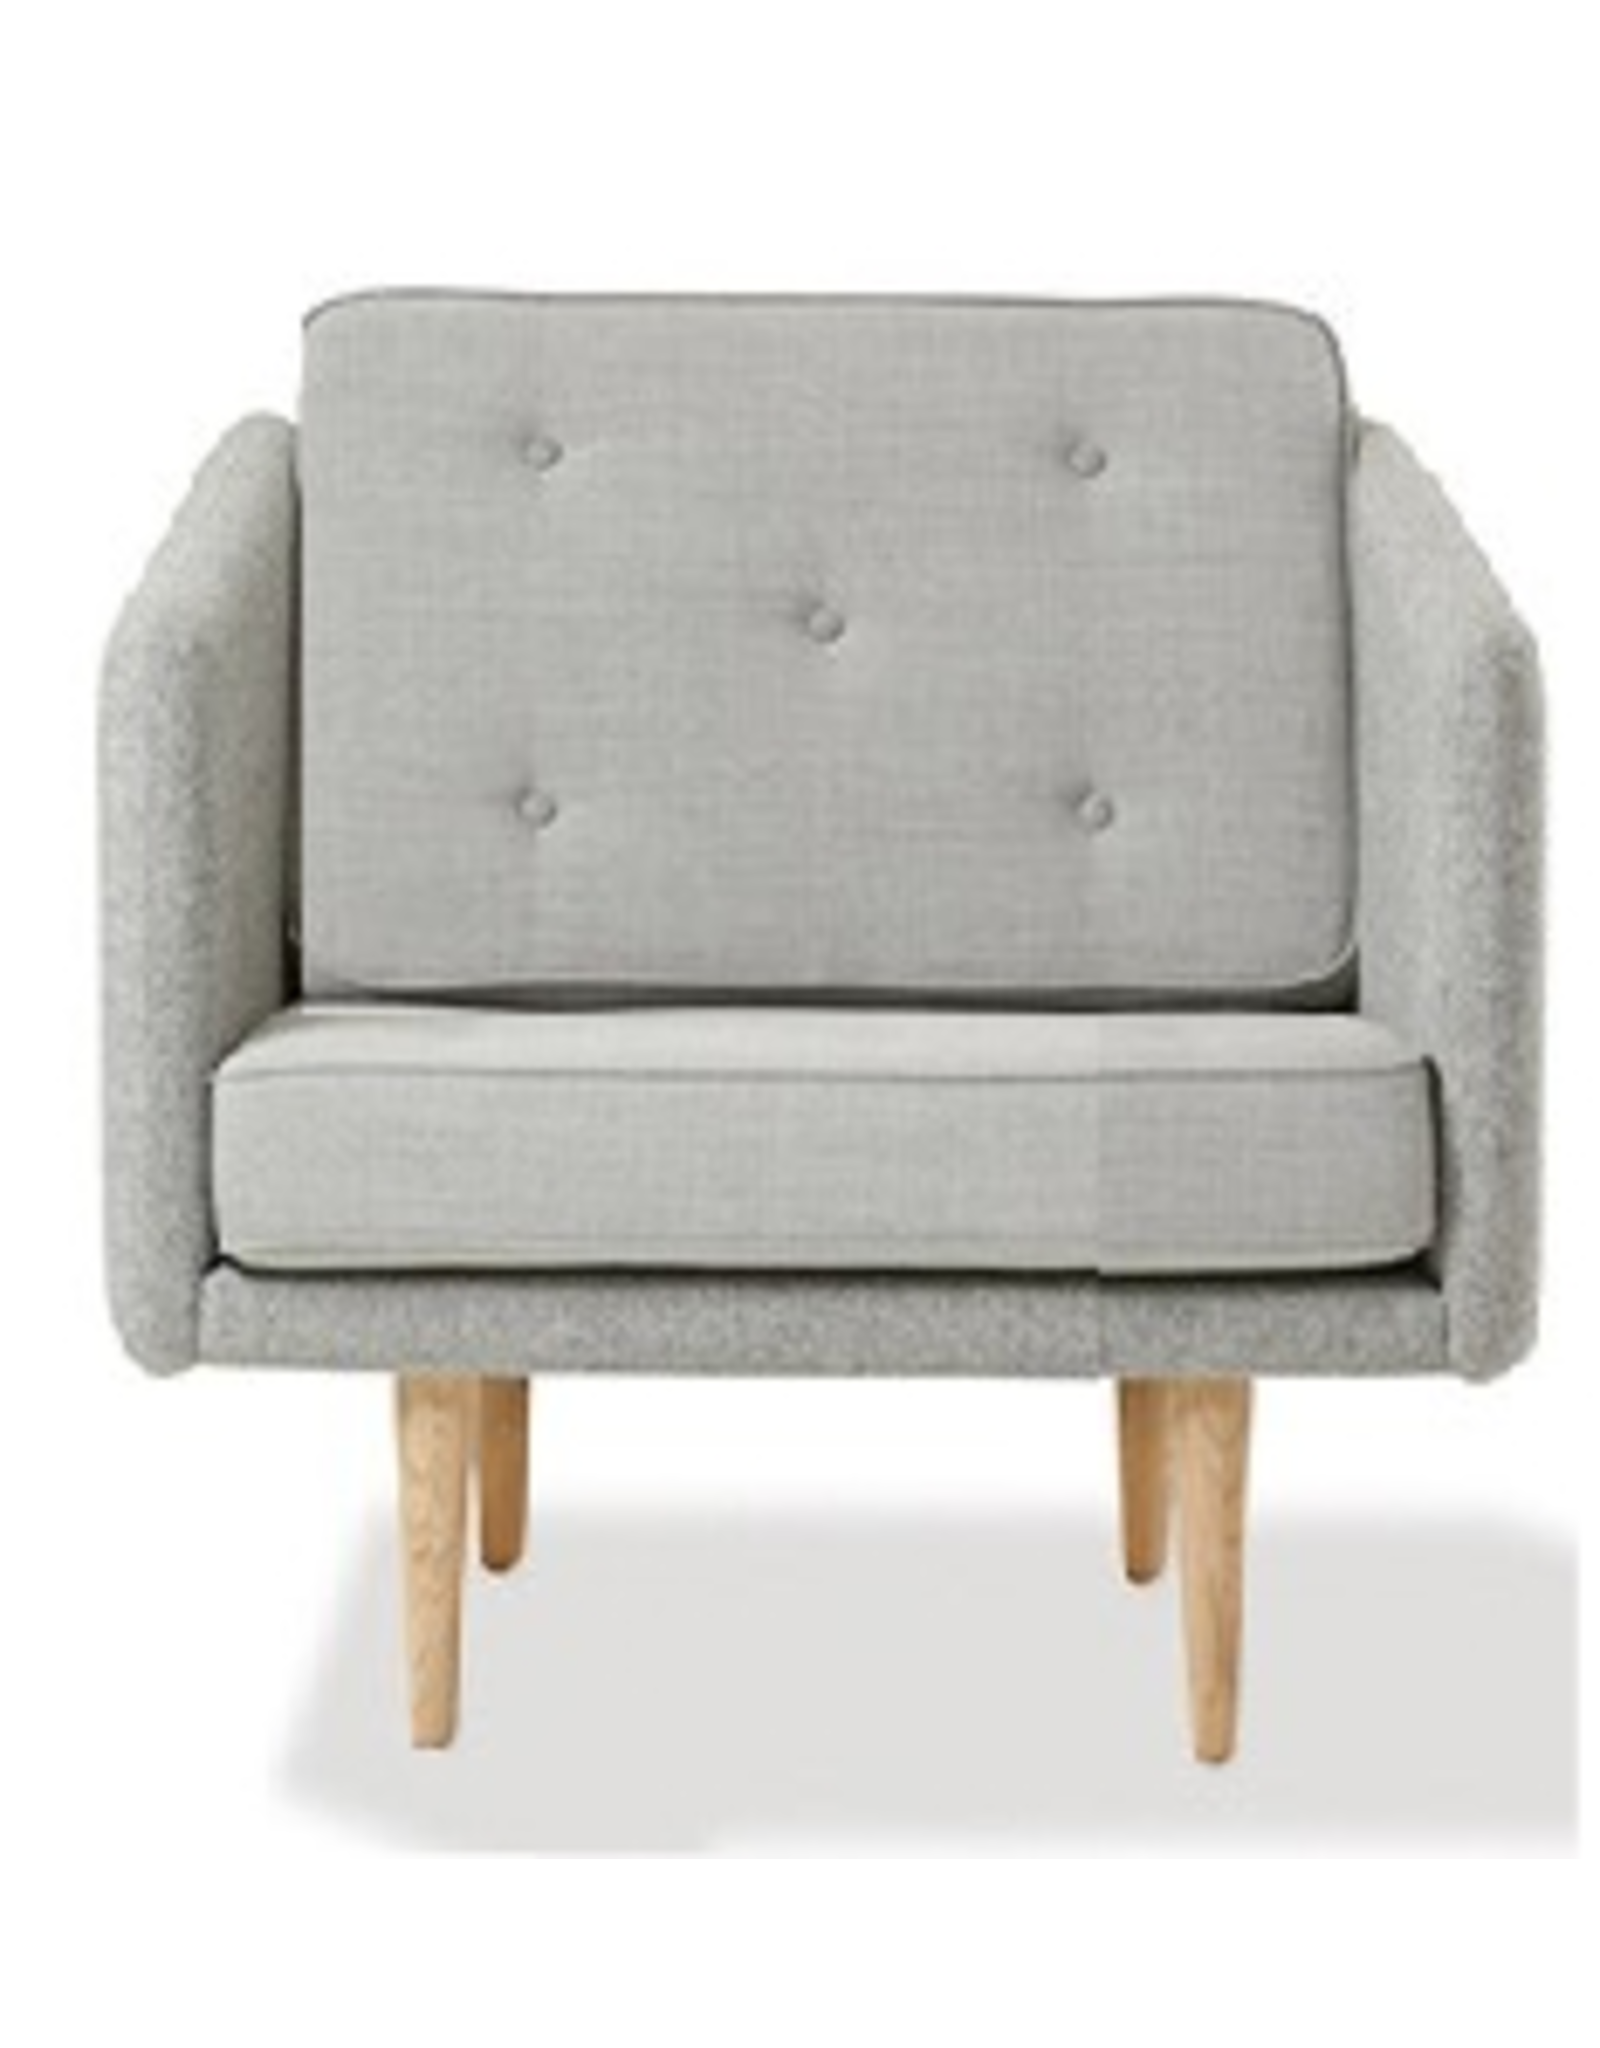 FREDERICIA 2001 NO. 1 CHAIR IN FABRIC (DISPLAY ITEM)